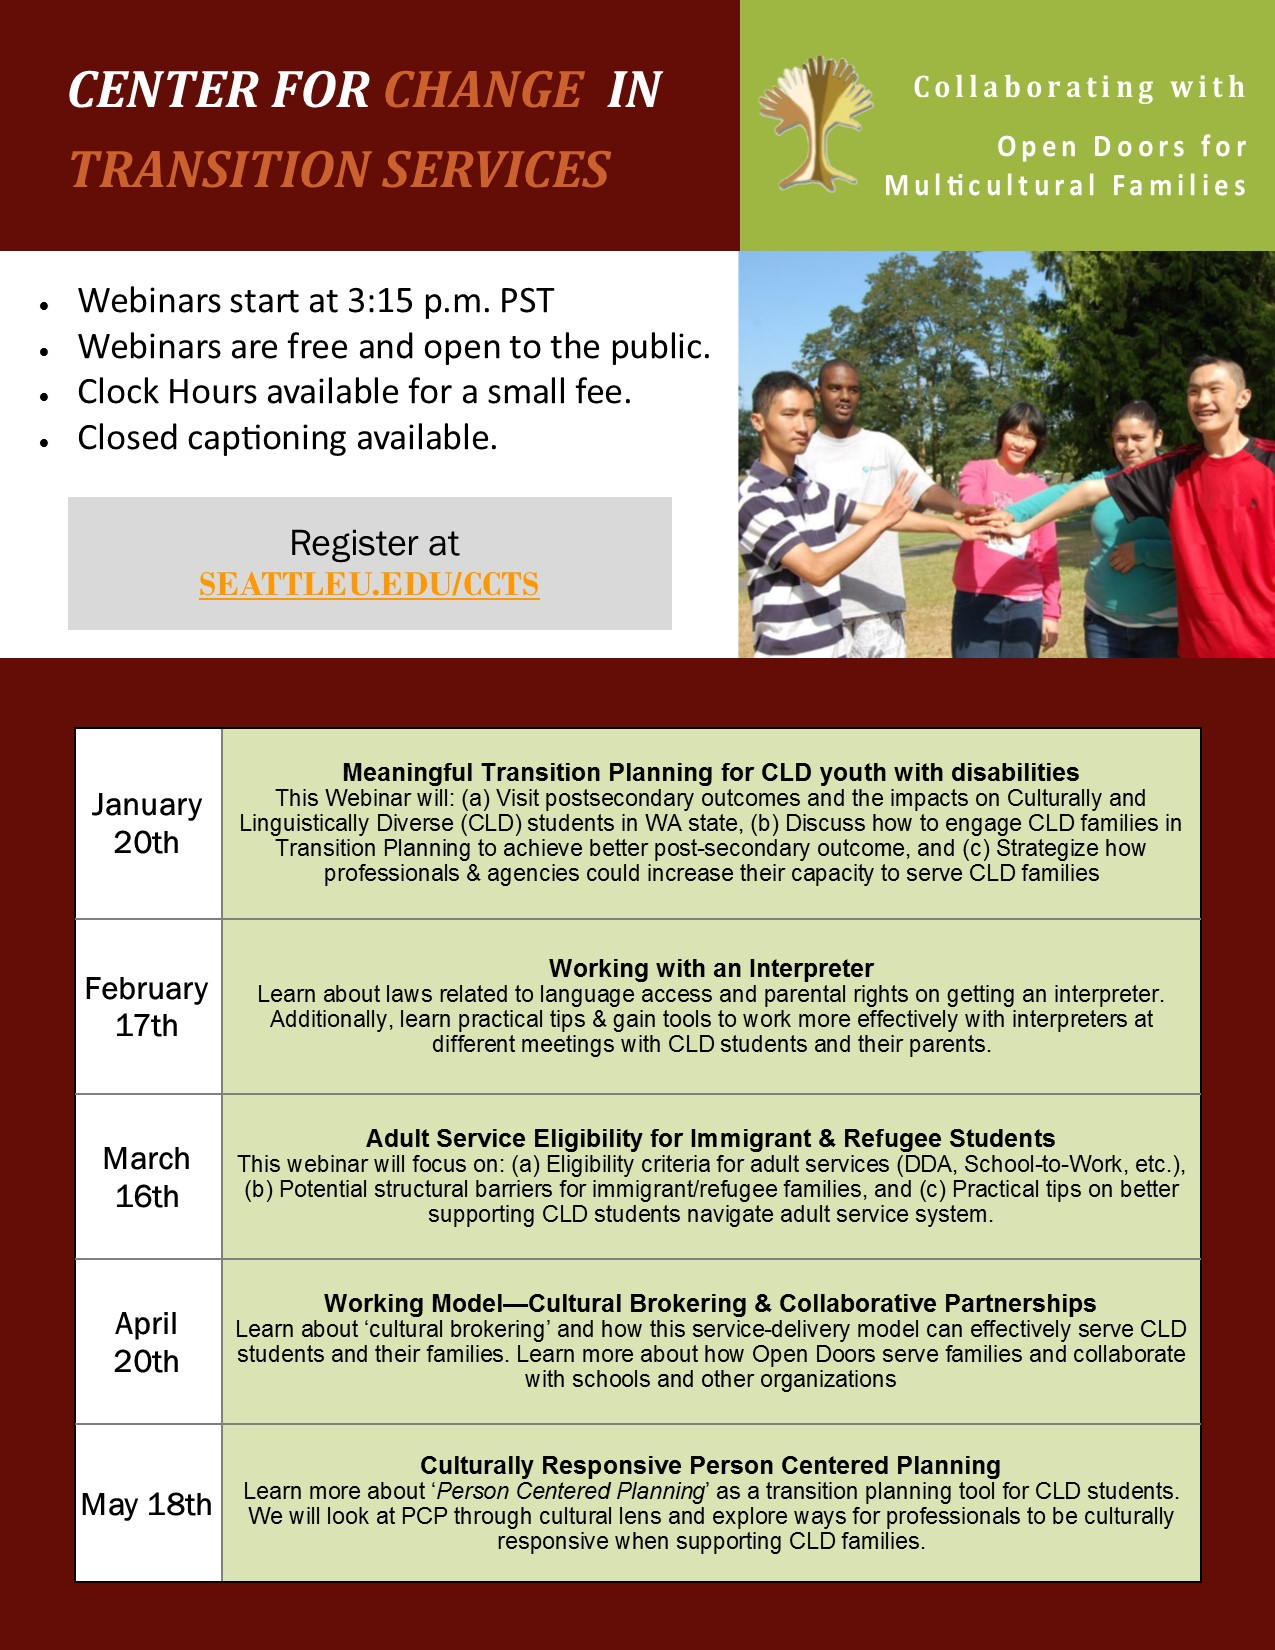 ODFM Cultural Competency Training Flyer_FINAL